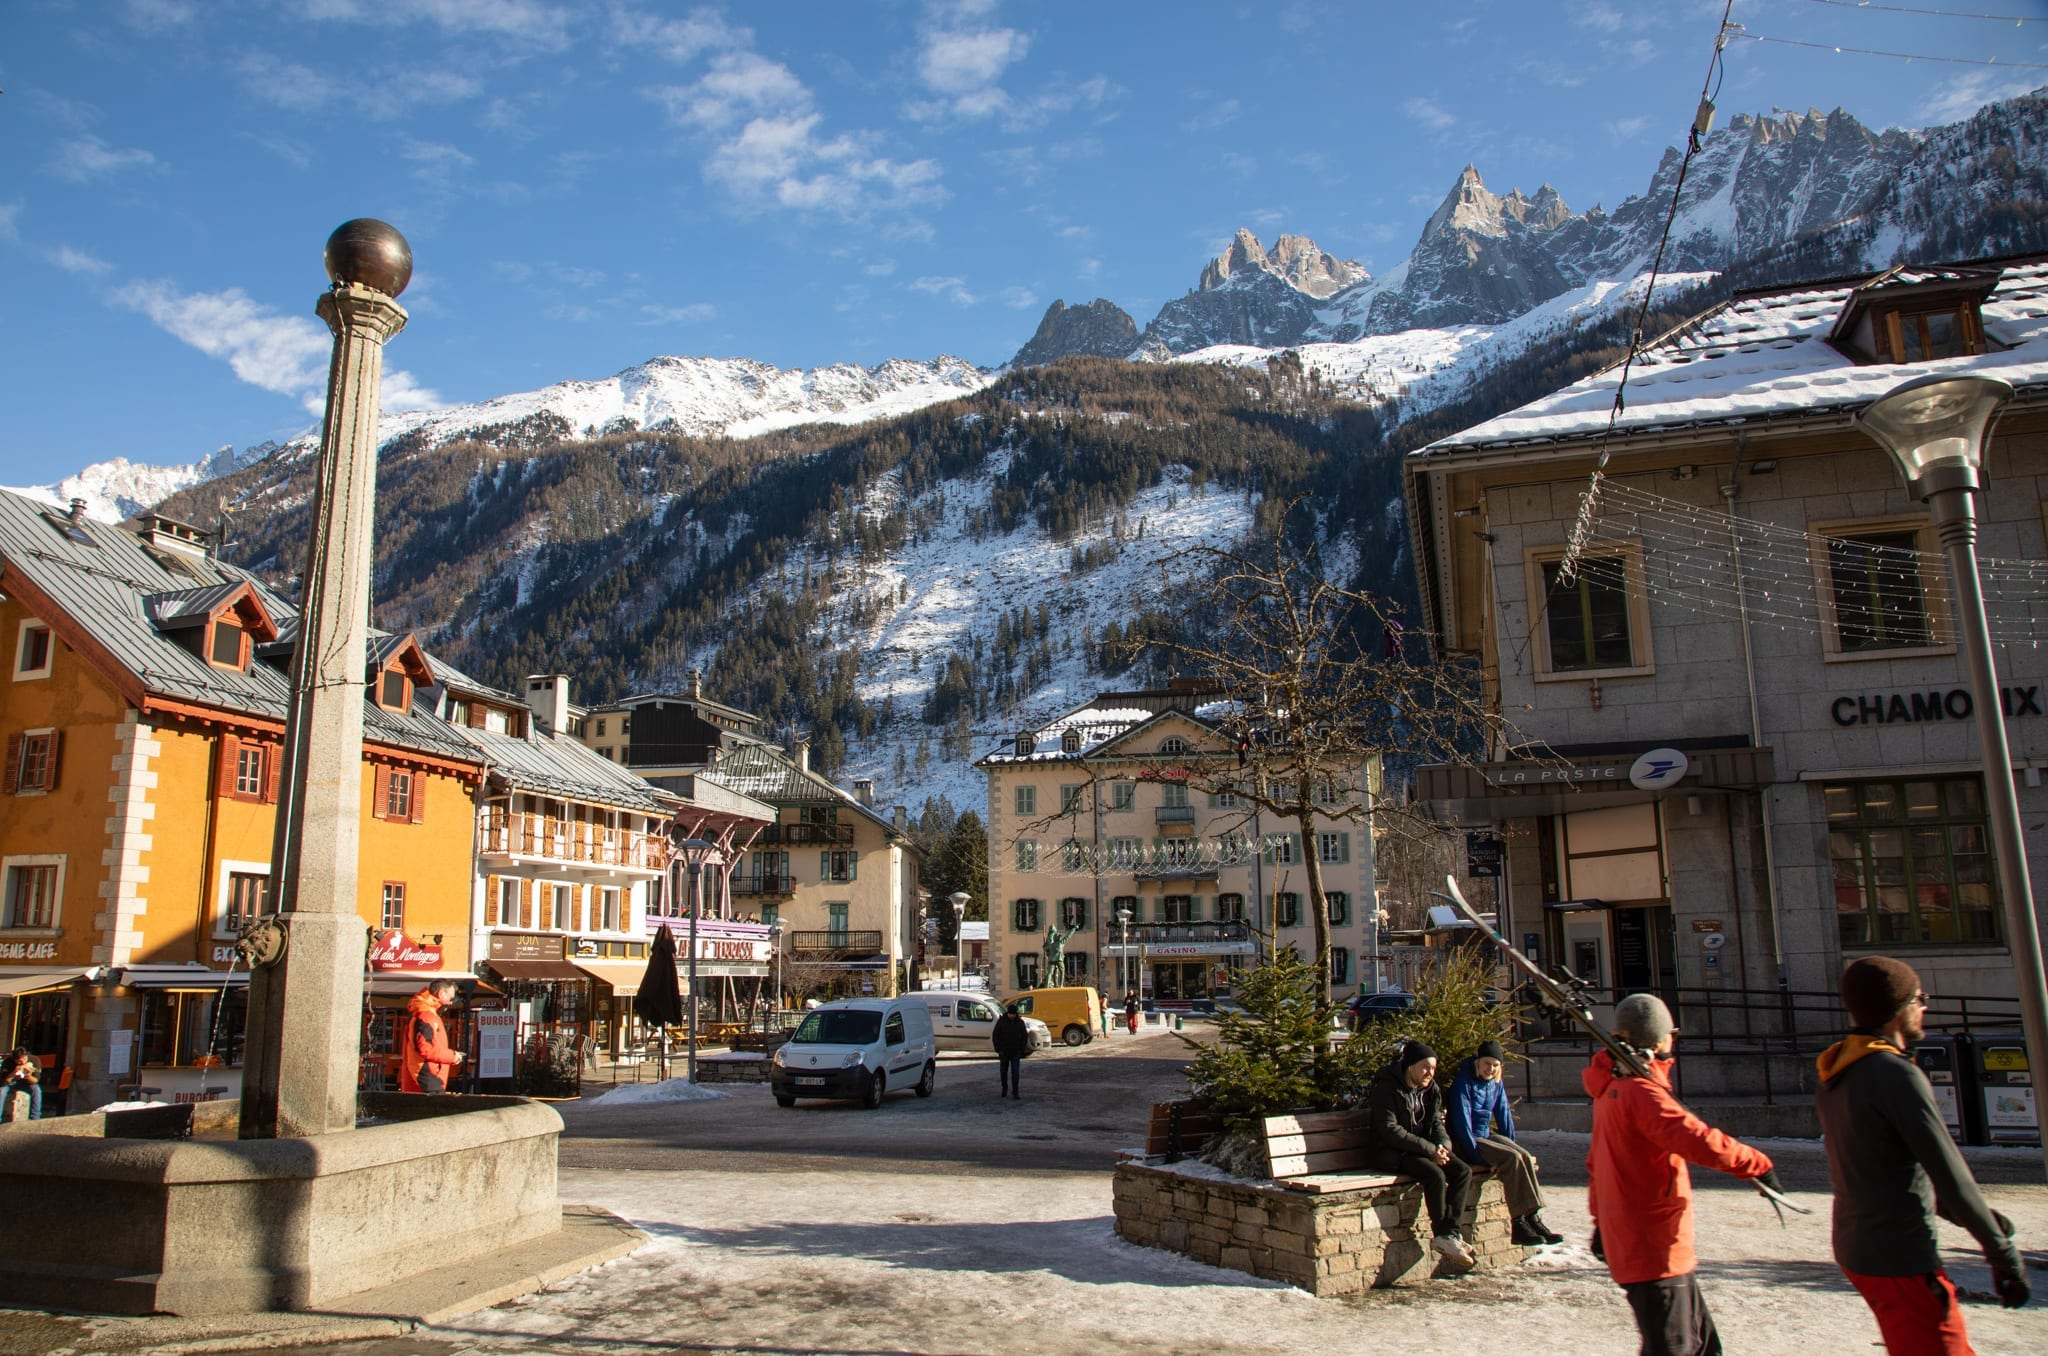 The Ultimate Guide to Chamonix